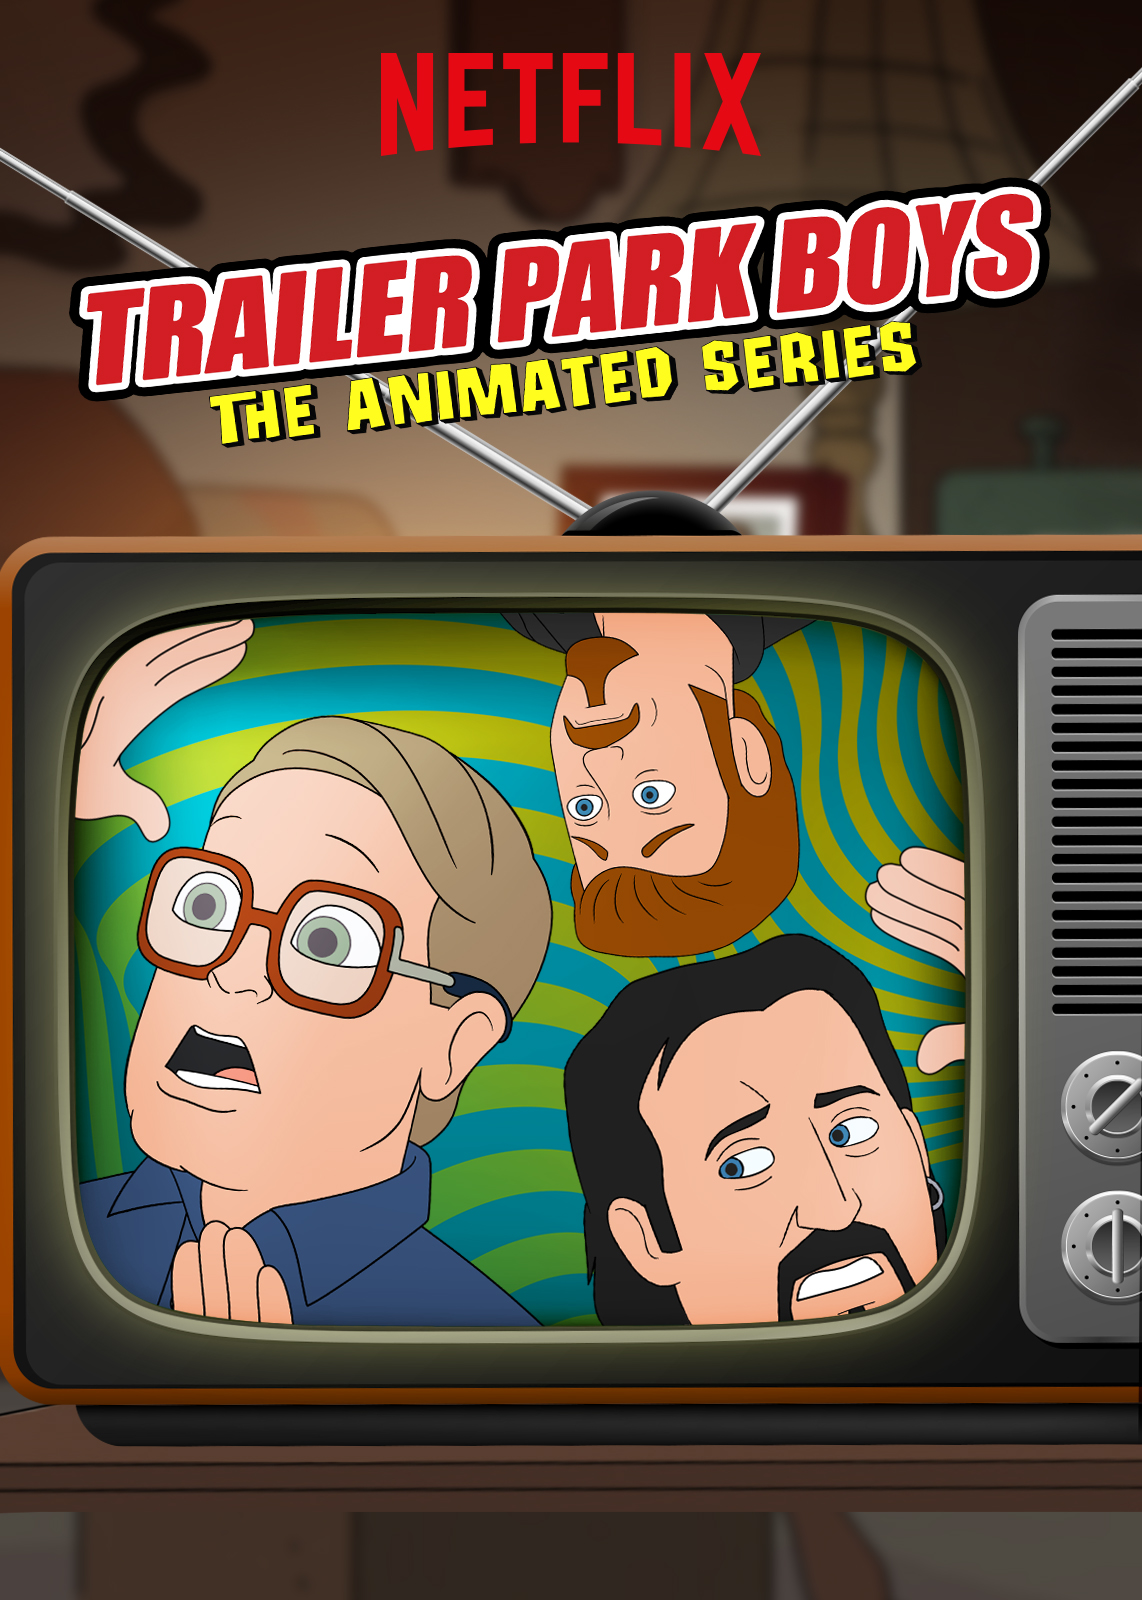 Trailer.Park.Boys.The.Animated.Series.S02E04.SPANiSH.1080p.WEB.x264-4FiRE